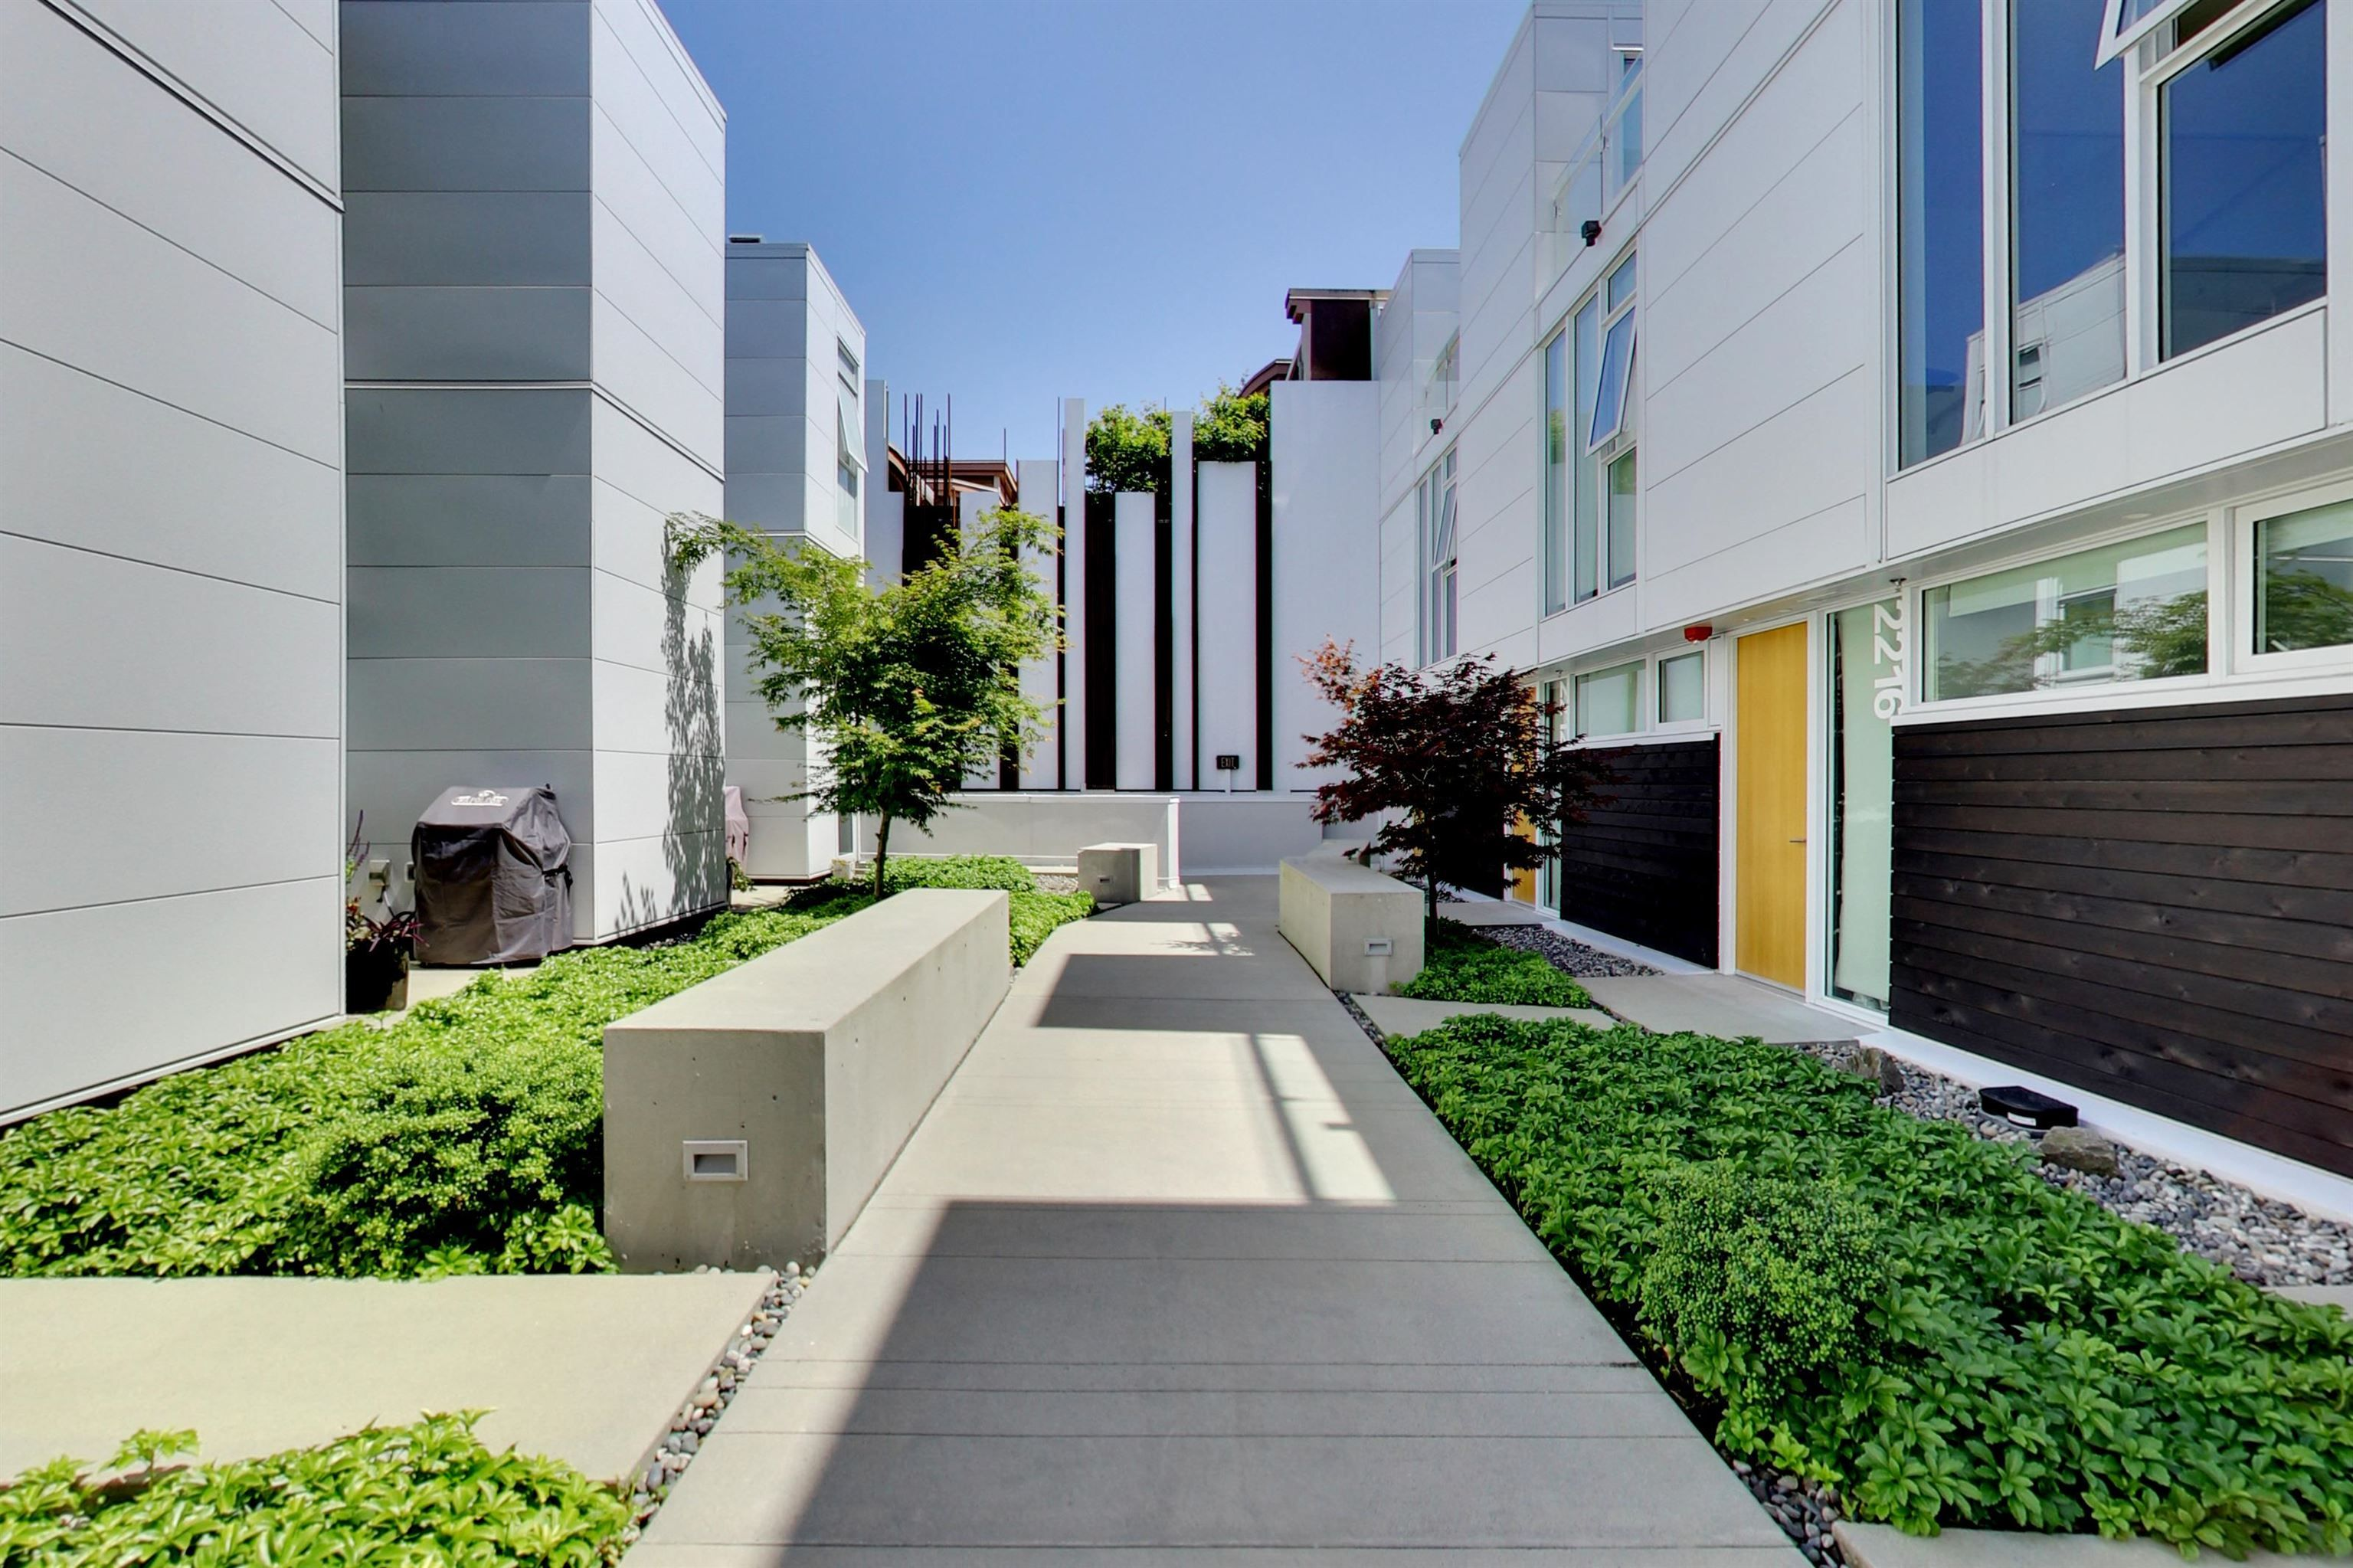 """Main Photo: 758 W 6TH Avenue in Vancouver: Fairview VW Townhouse for sale in """"6TH + STEEL"""" (Vancouver West)  : MLS®# R2625965"""